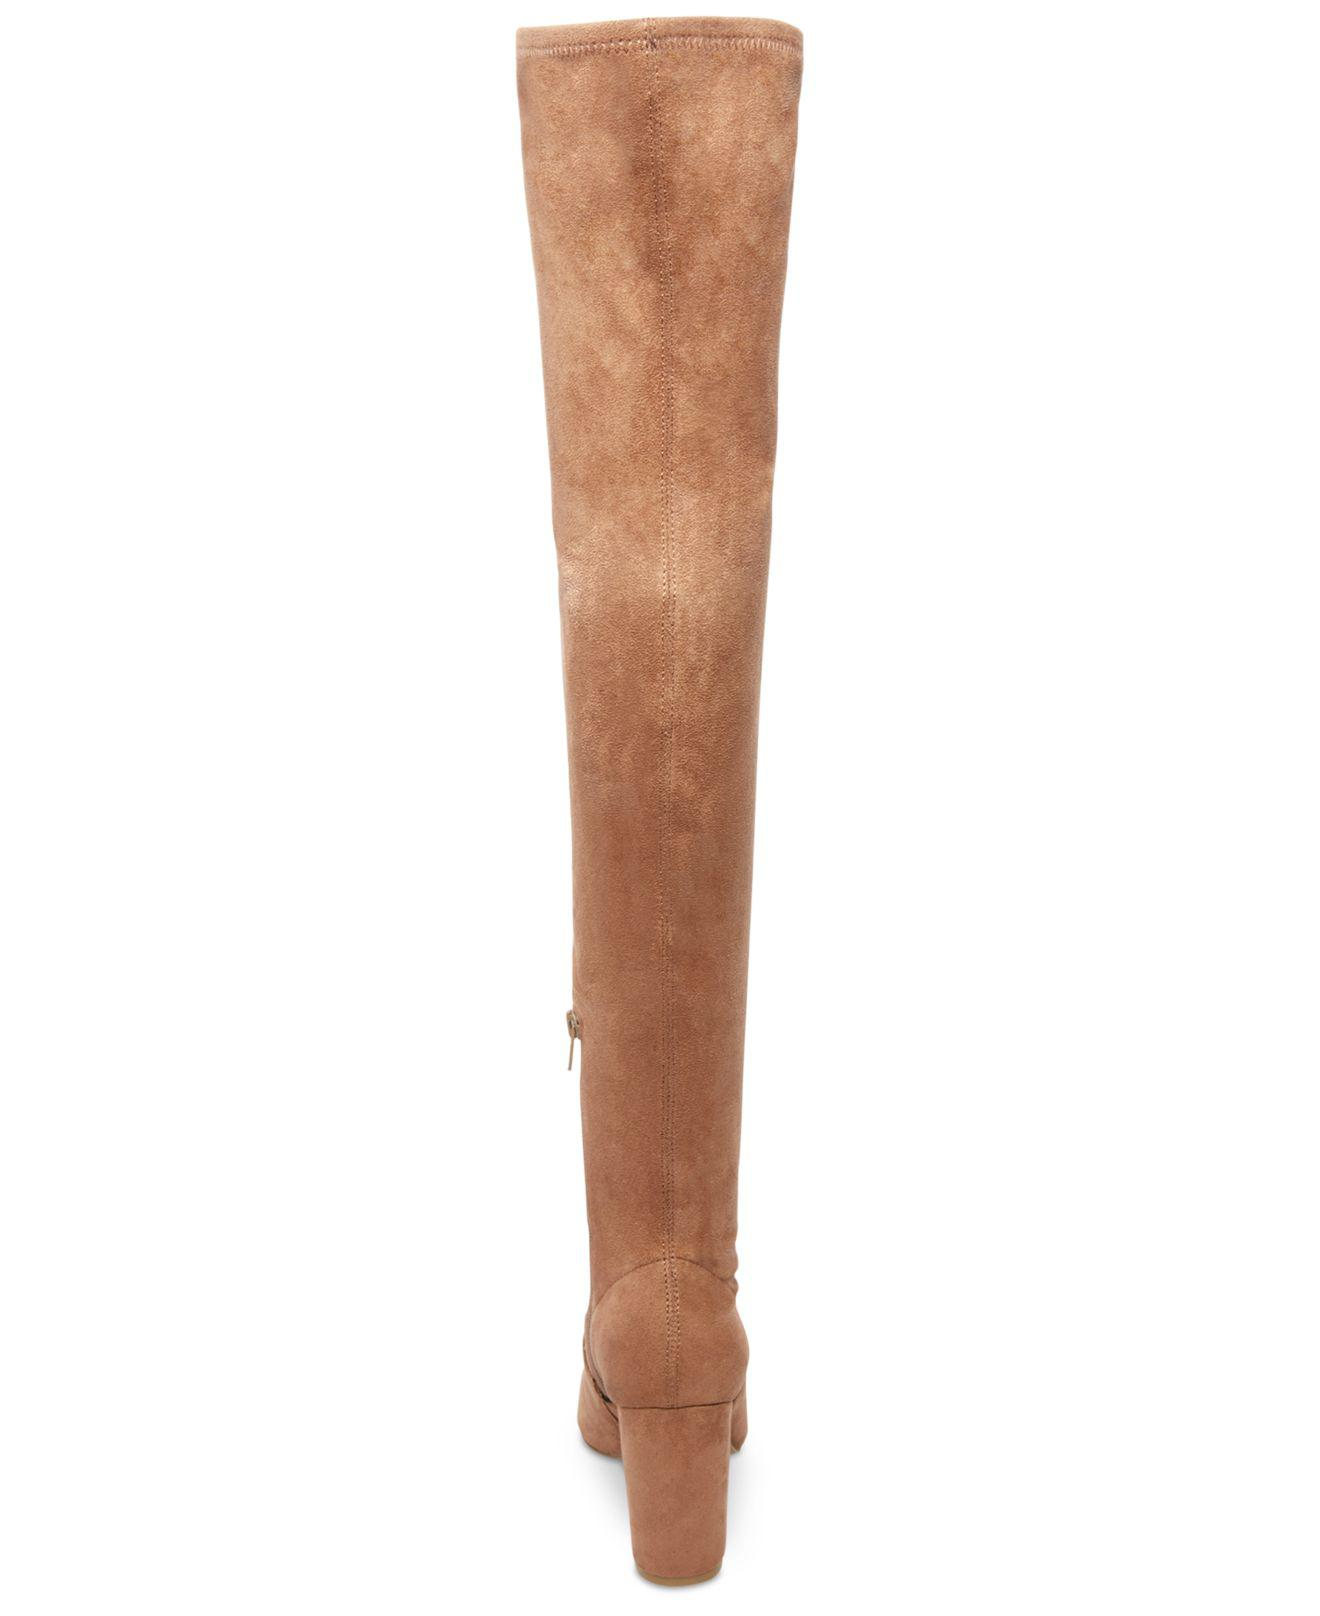 facd525d8c5 Lyst - Steve Madden Rational Over-the-knee Boots in Brown